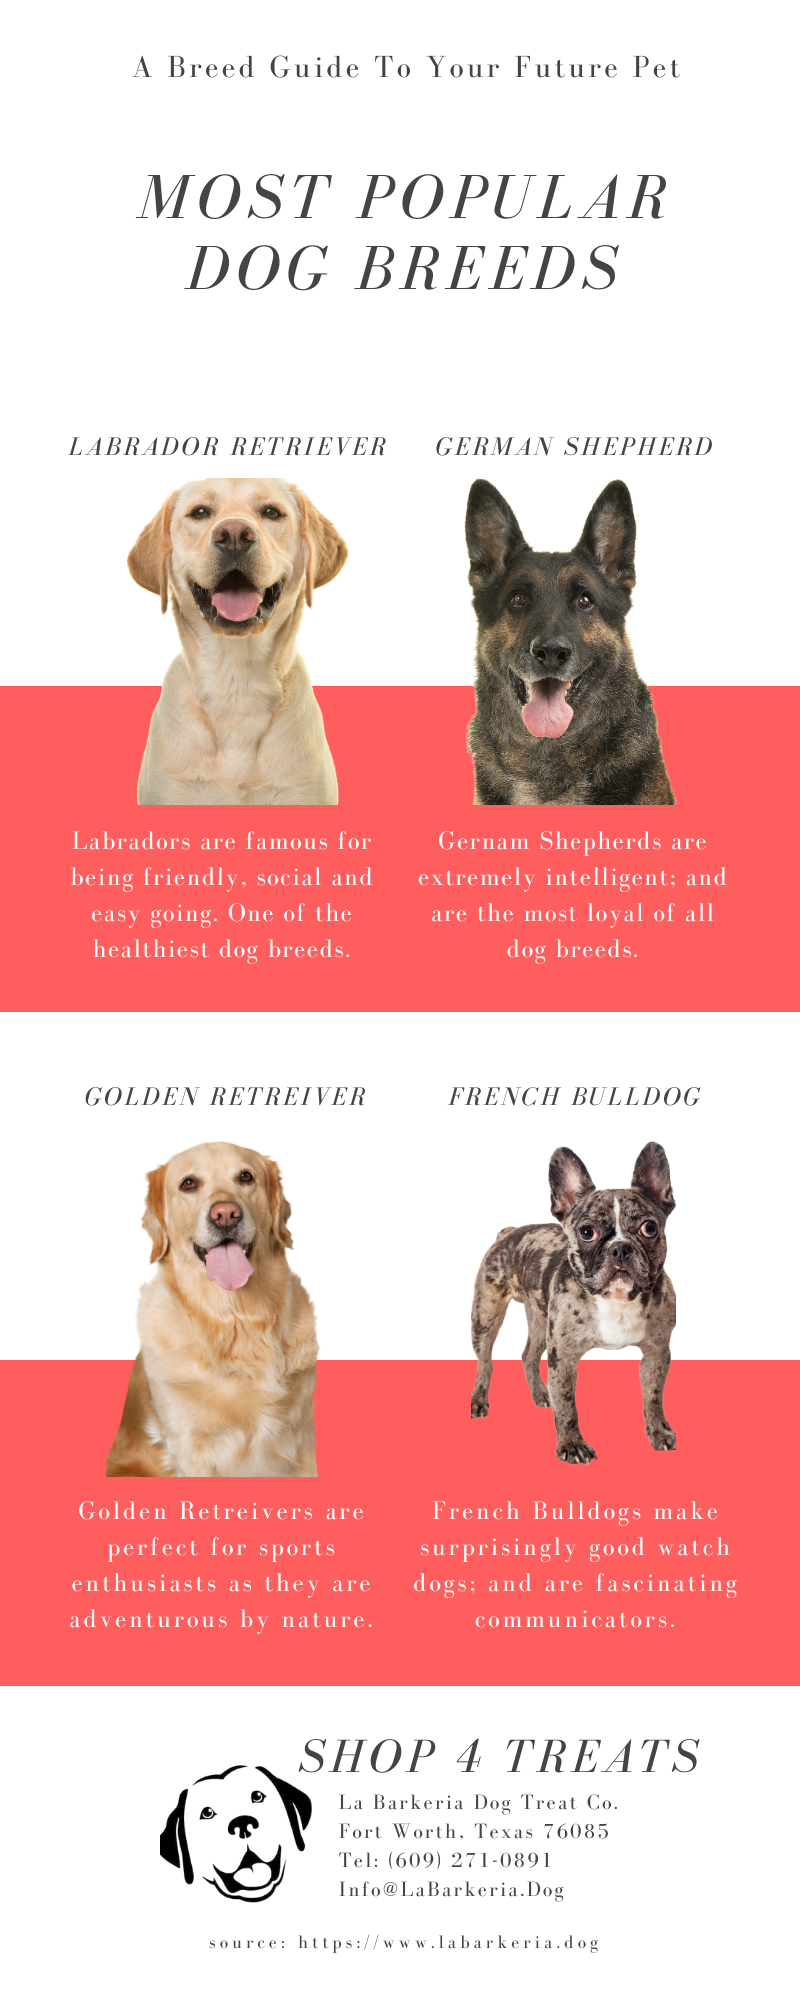 Ten most popular breeds of dogs according to the American Kennel Club